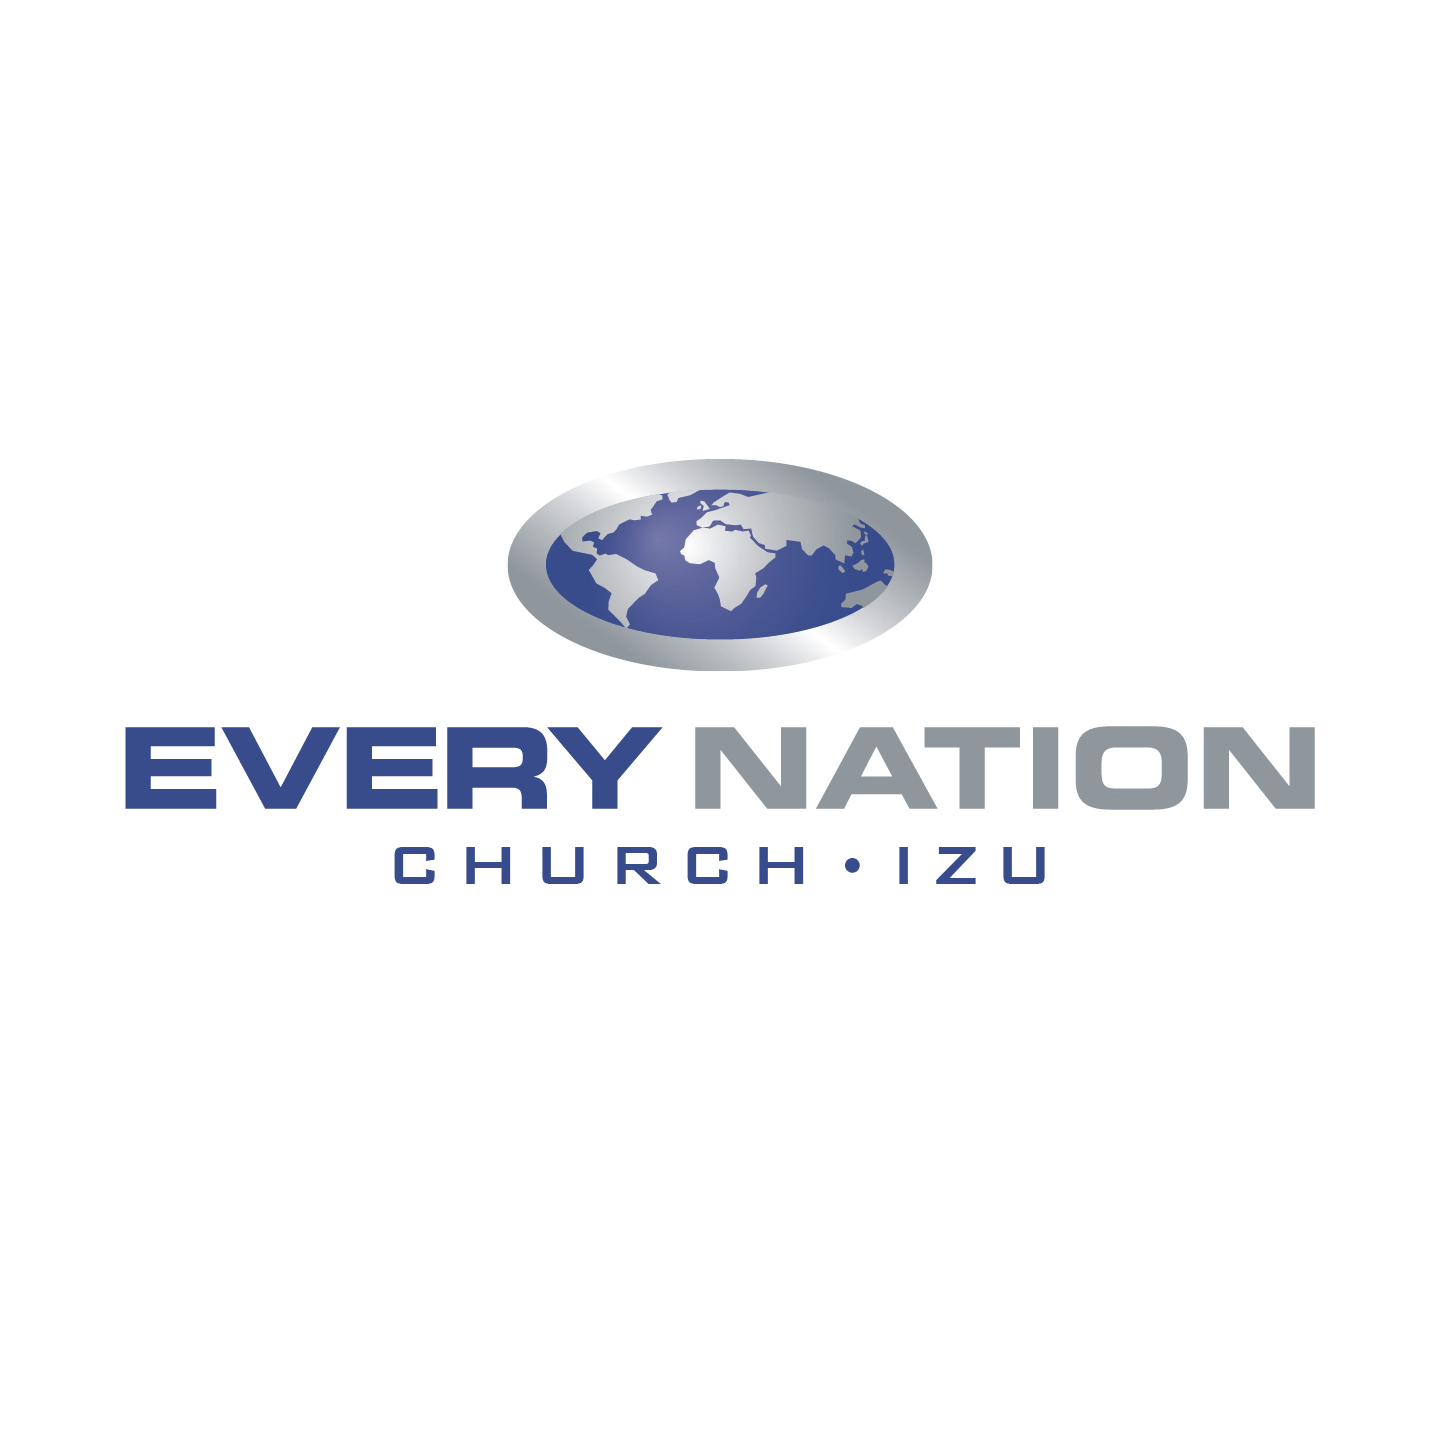 Every Nation Church Izu